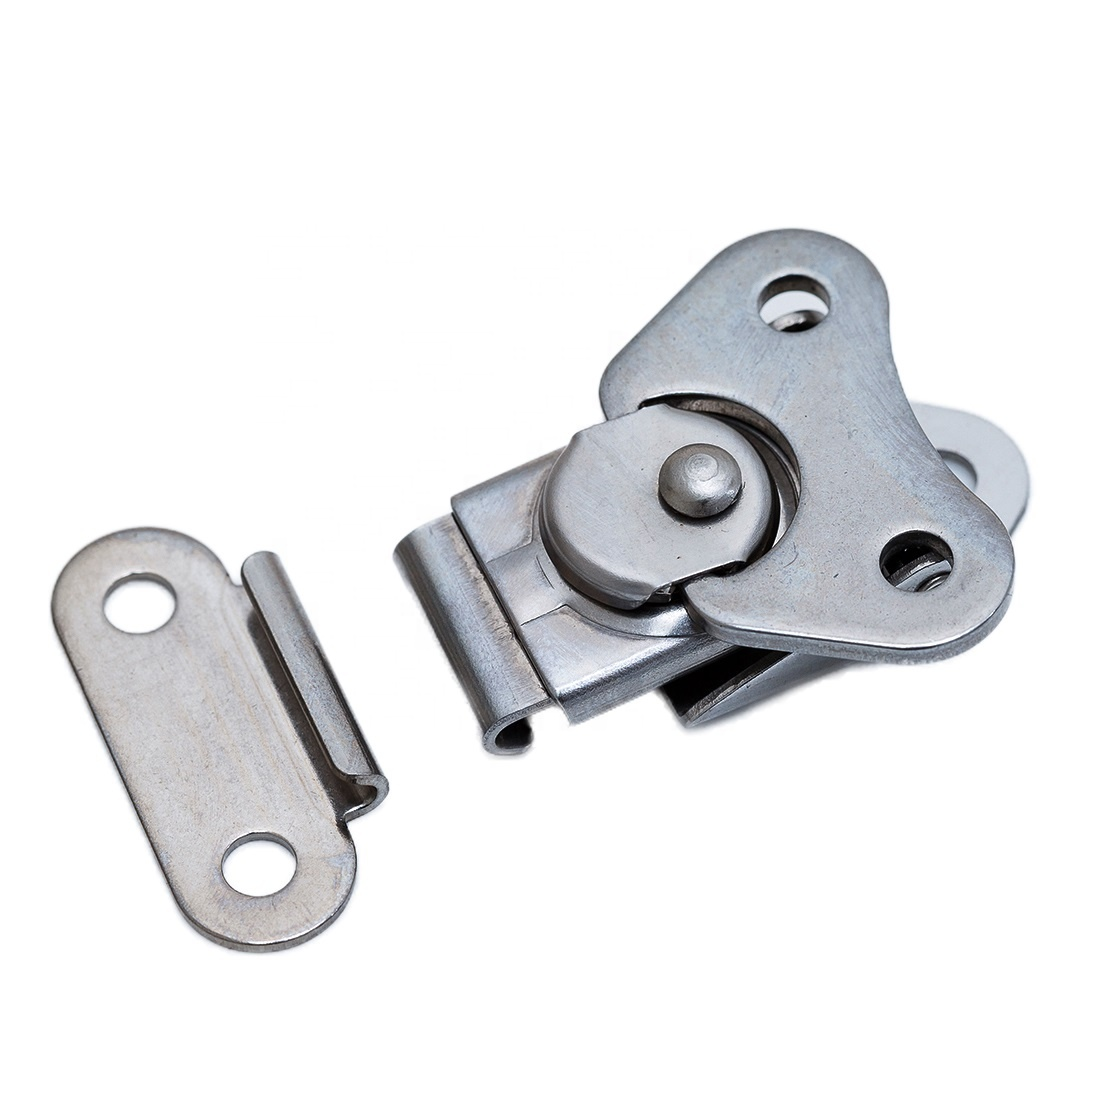 TS-153-SUS- Surface Mount Twist Toggle Lock Flight Recessed Stainless Steel Case Latch And <strong>Hardware</strong>